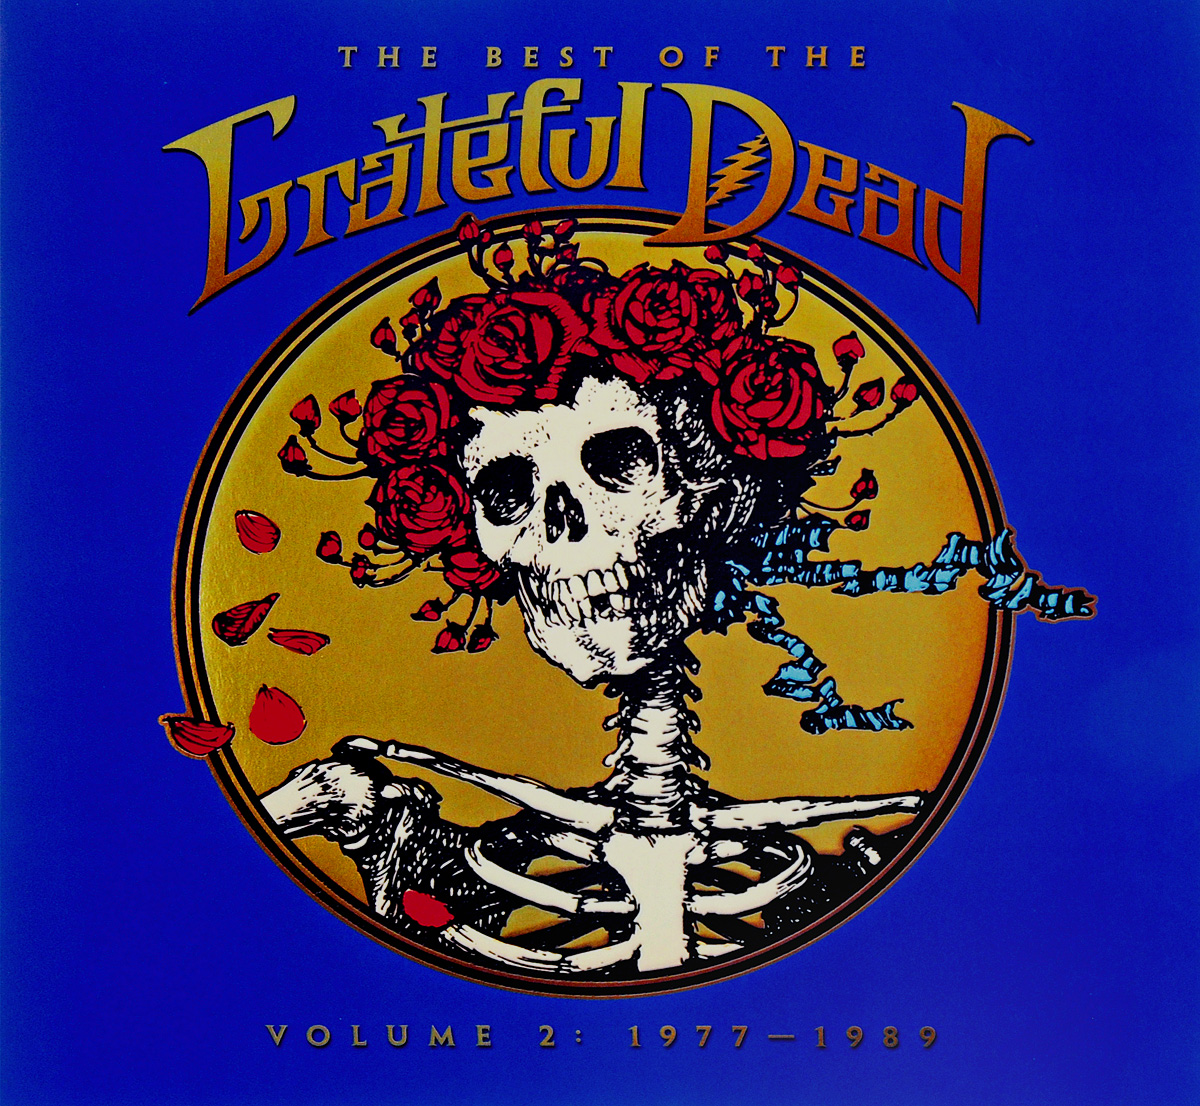 The Grateful Dead. The Best Of The Grateful Dead Volume 2: 1977 - 1989 (LP)